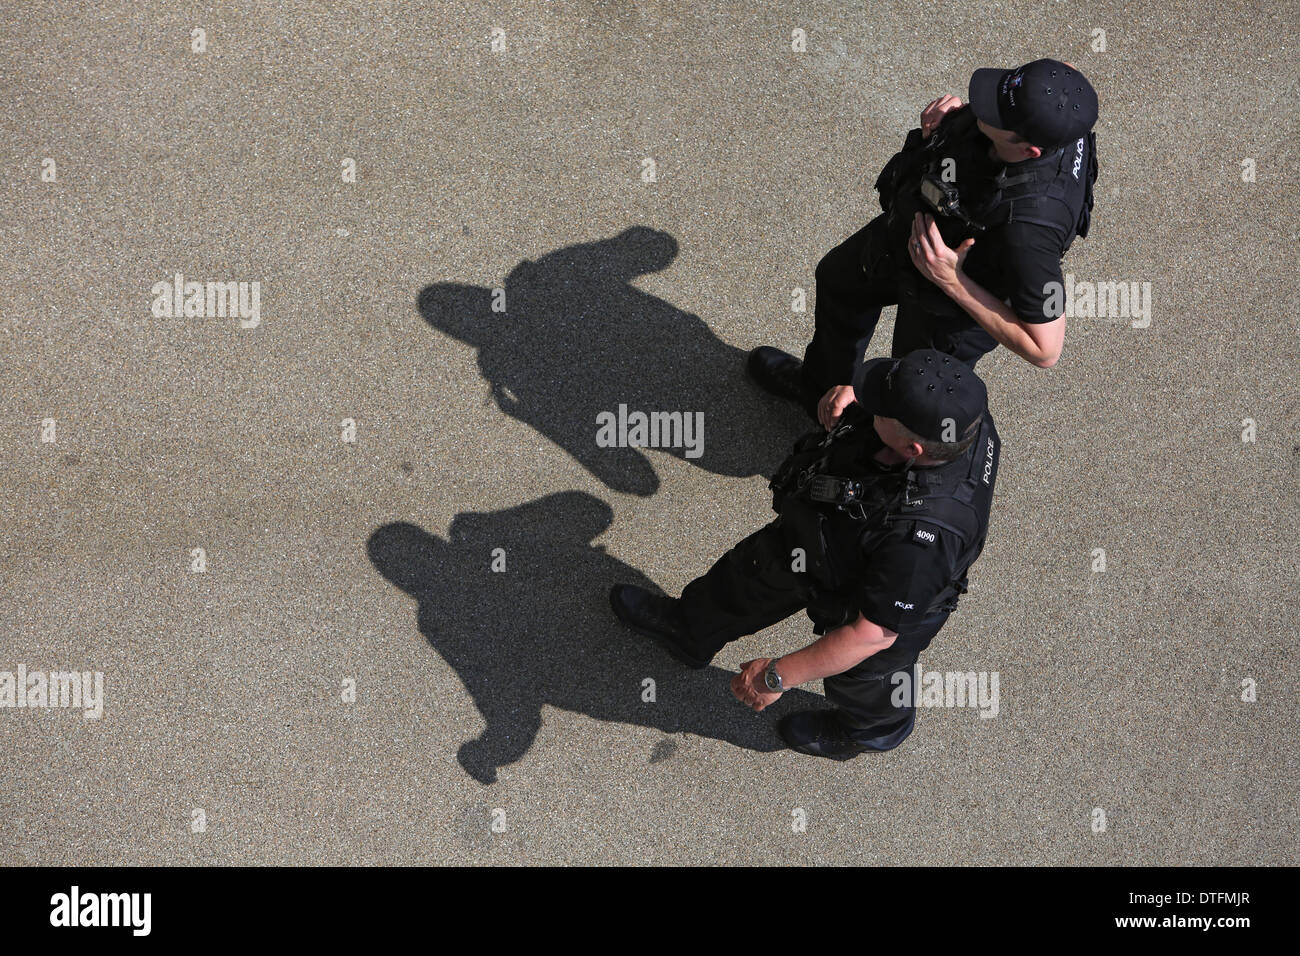 Ascot, United Kingdom, police officers run along a road - Stock Image